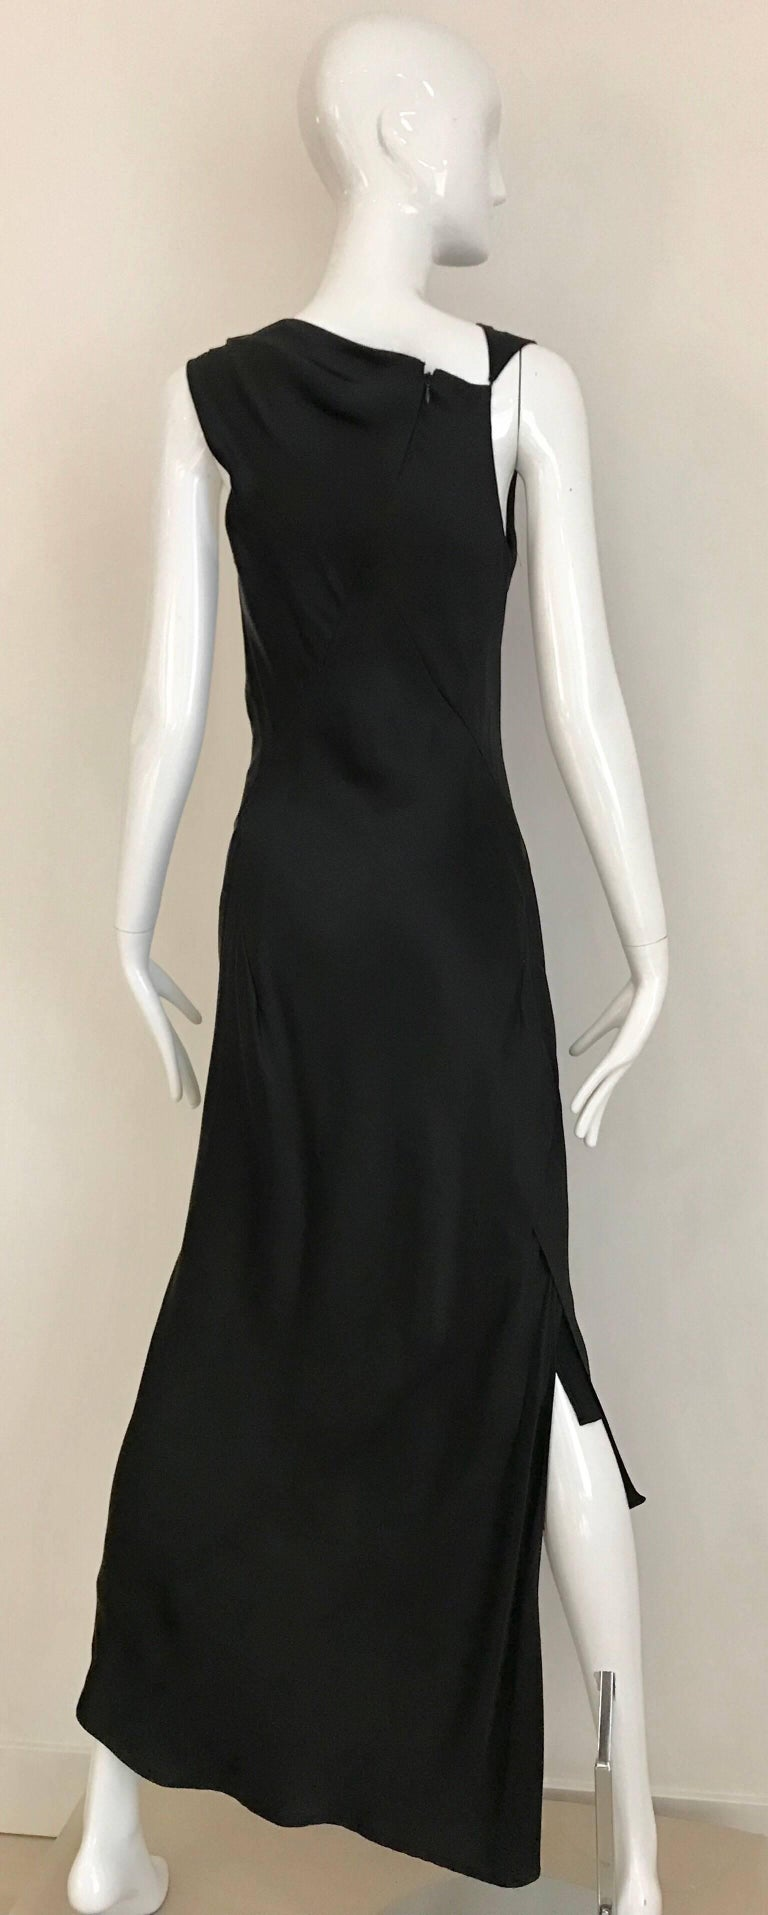 Jil Sander Black Silk Charmeuse Dress In Excellent Condition For Sale In Beverly Hills, CA